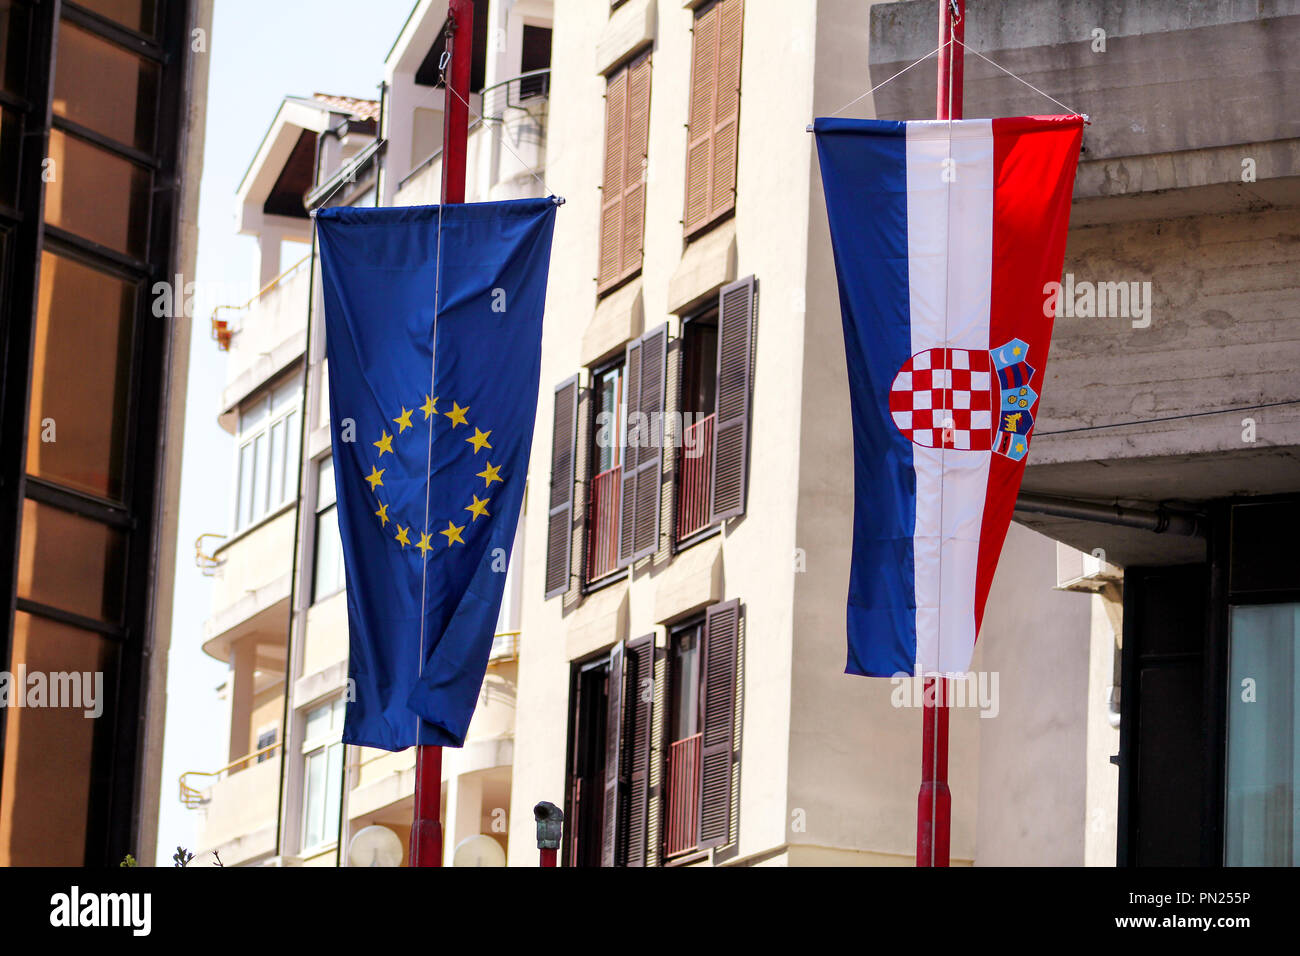 Flags of the European Union and Croatia on the street. In the background a detail of the building. Croatian and EU flag. - Stock Image